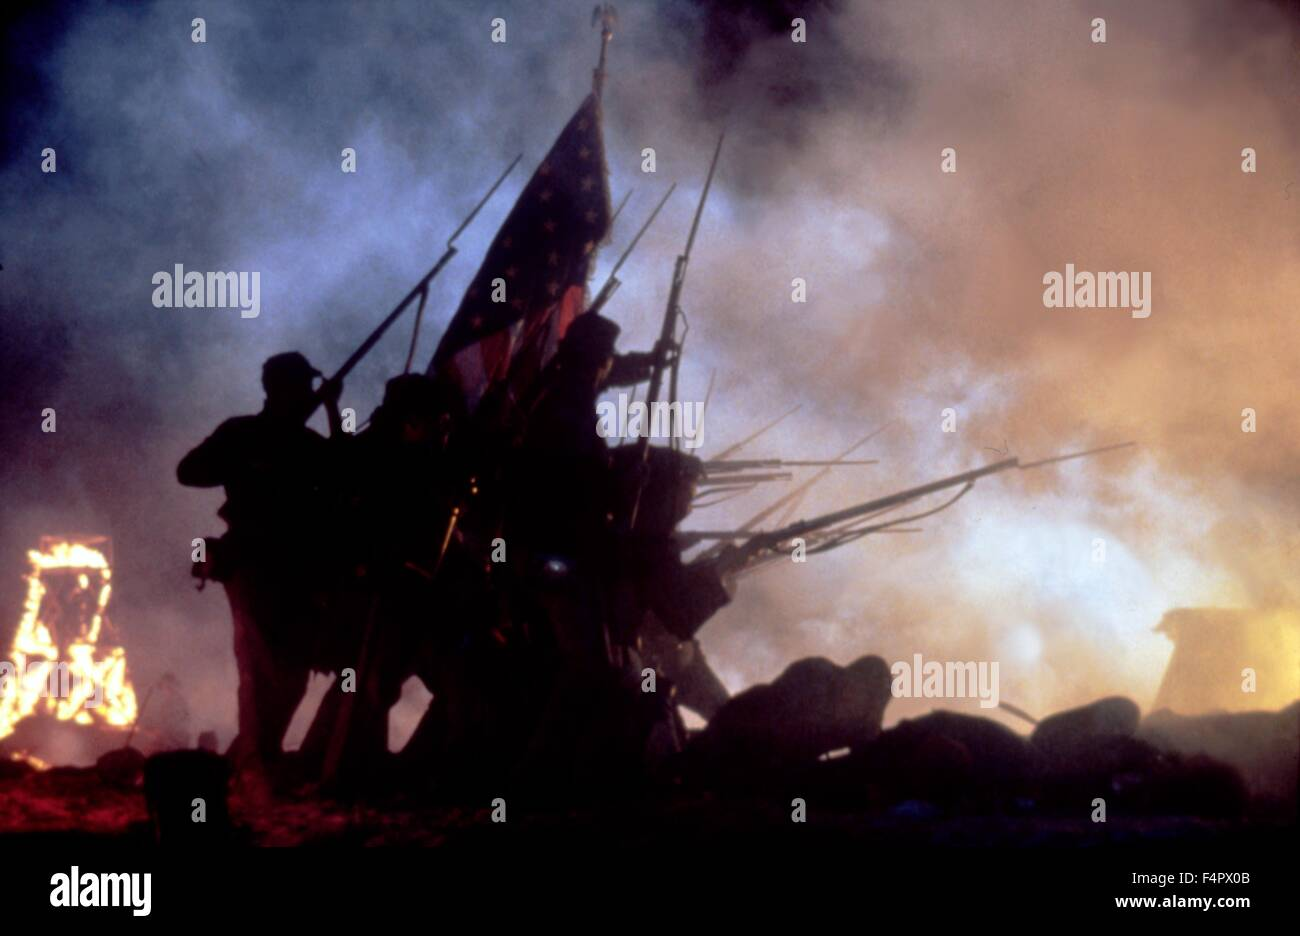 Glory / 1989 directed by Edward Zwick [TriStar Pictures] - Stock Image